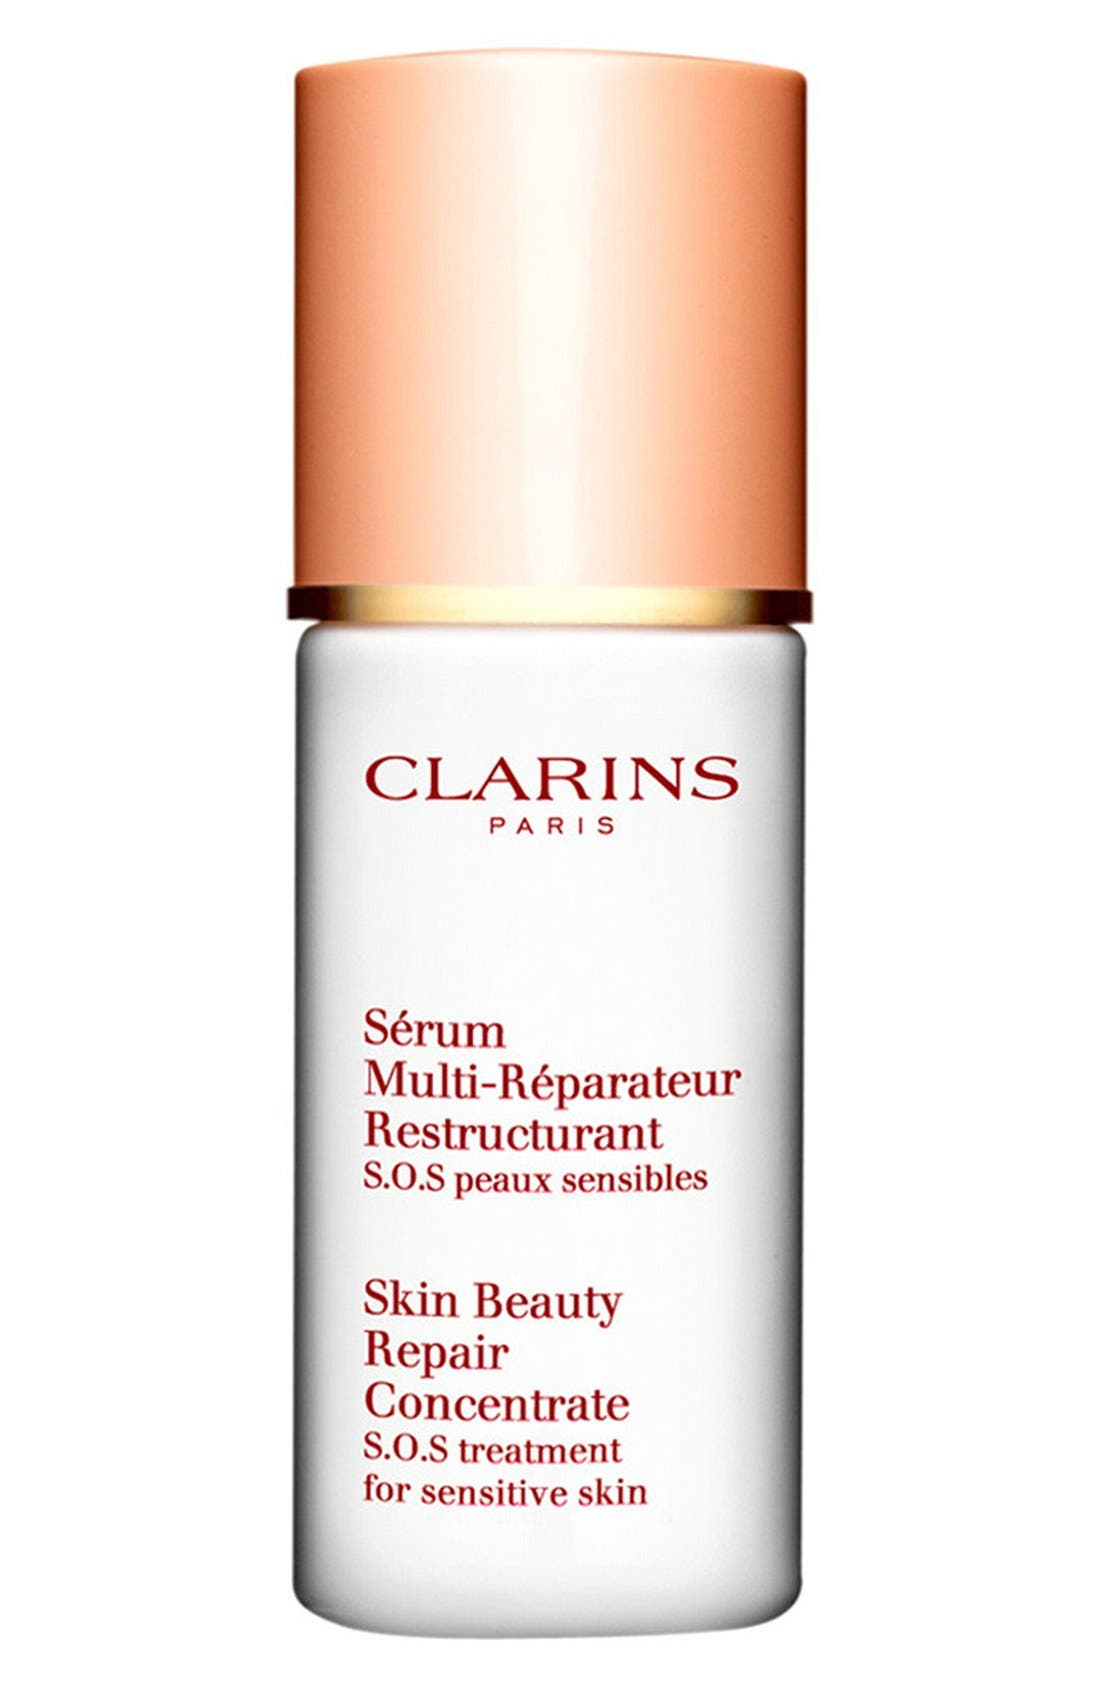 Clarins 'Gentle Care' Skin Beauty Repair Concentrate